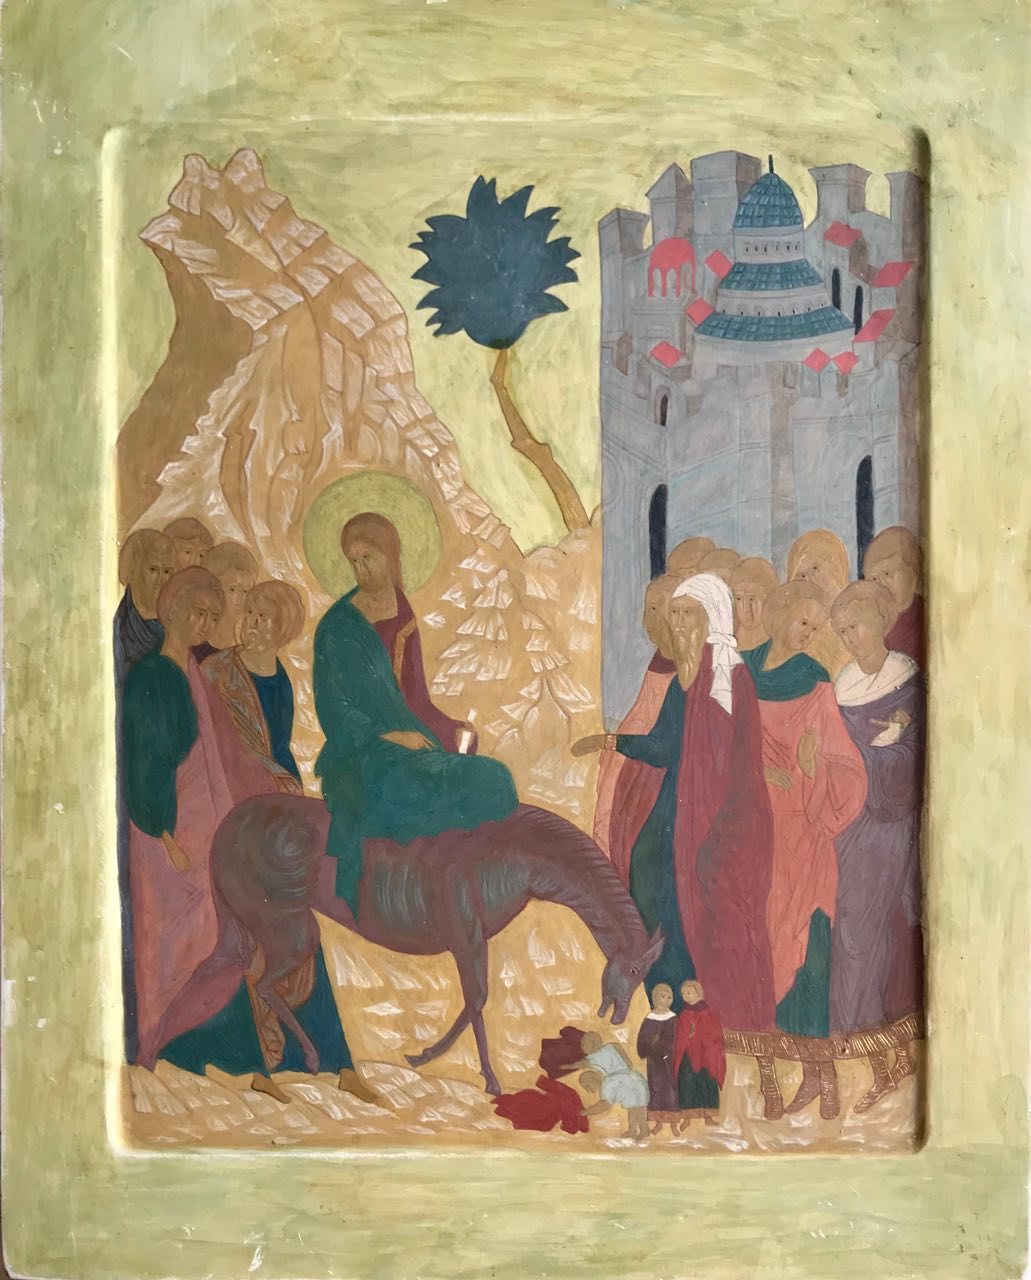 Entry of the Lord into Jerusalem, (process of work), egg tempera, wood gesso, canvas, 50x40, 2017.jpg